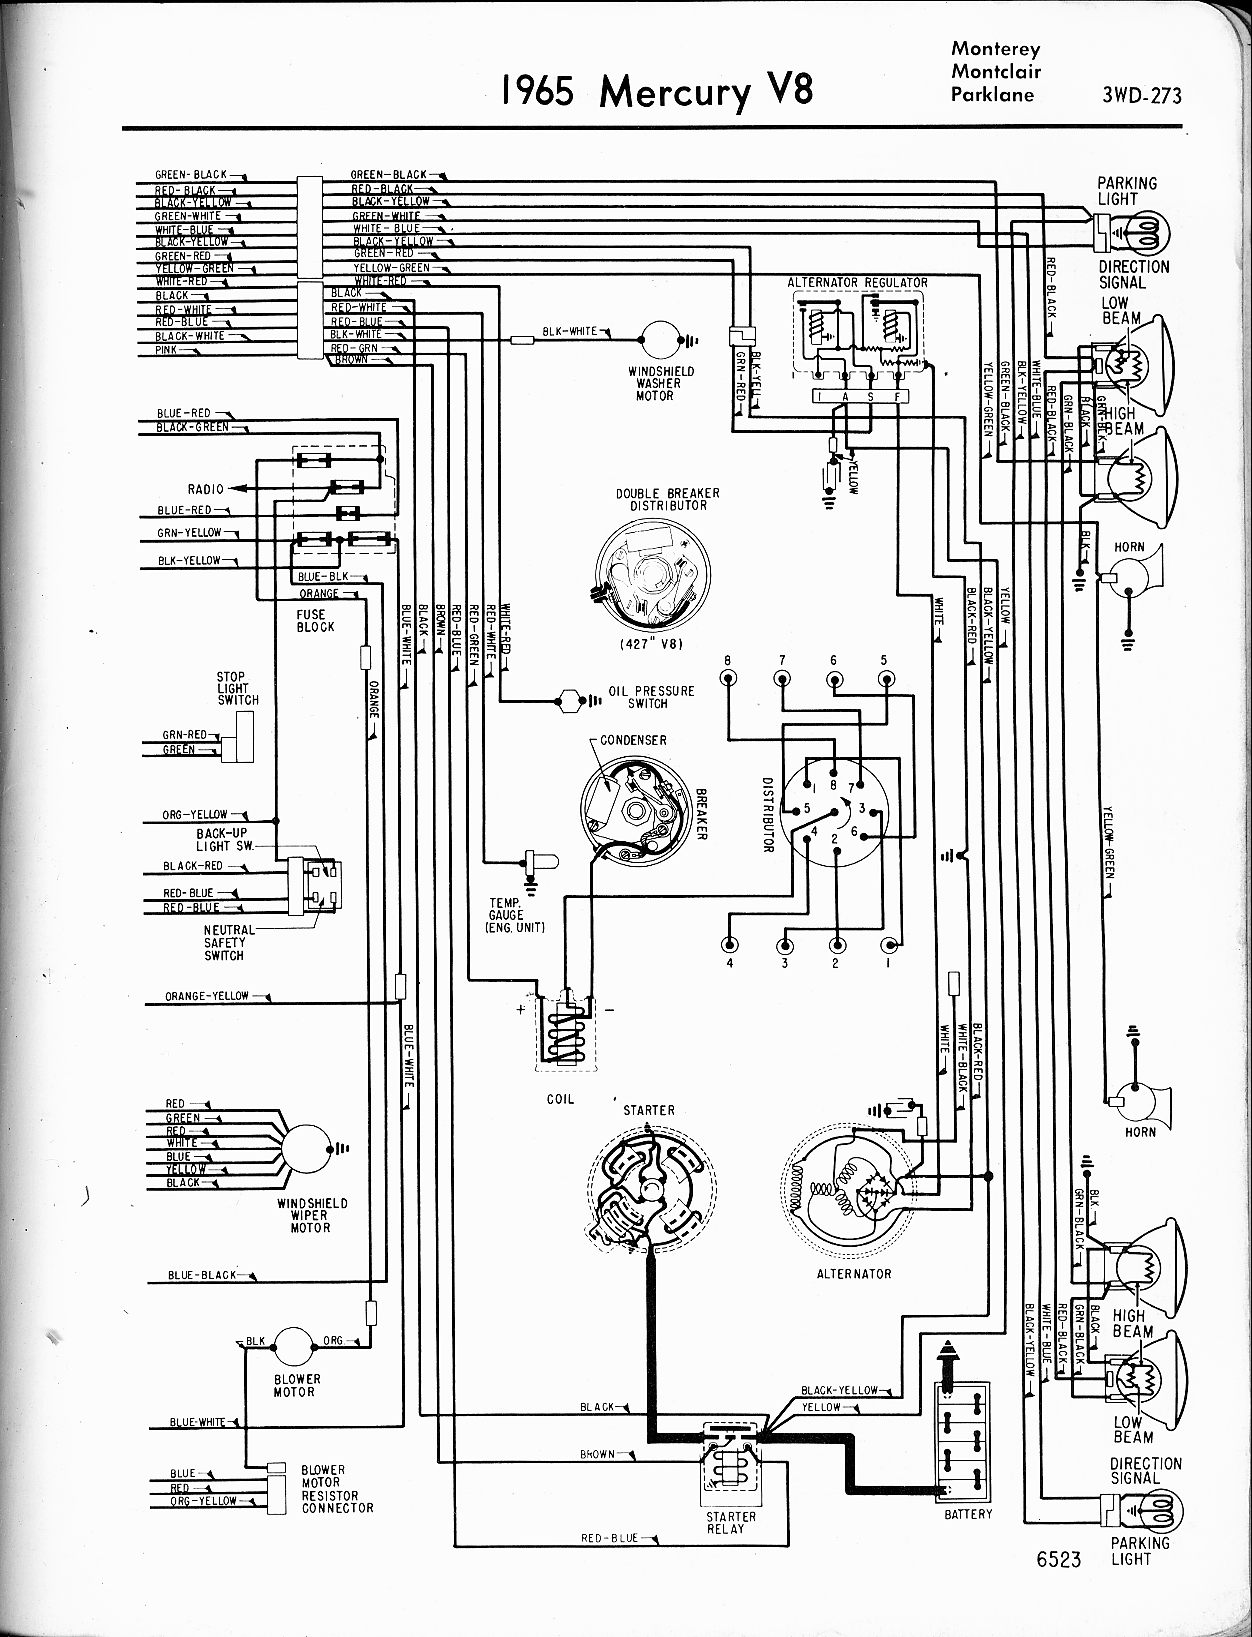 MWire5765 273 mercury wiring diagrams the old car manual project 72 custom wiring diagram at readyjetset.co